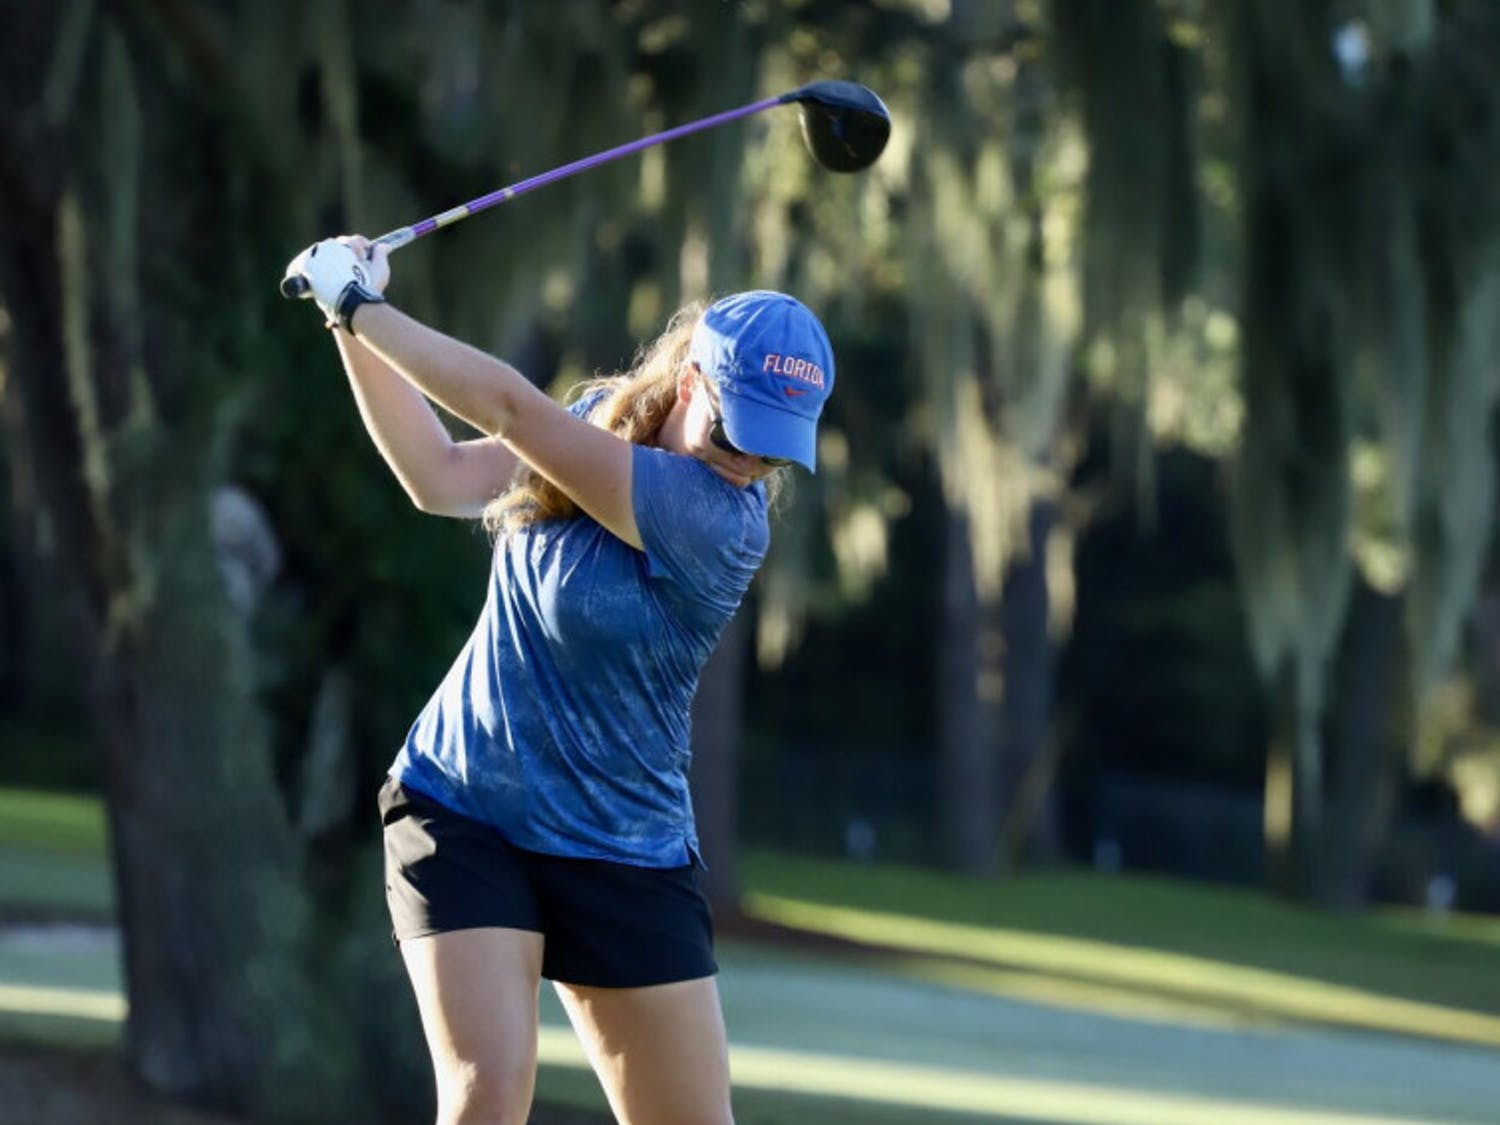 Addie Baggarly (pictured) and Annabell Fuller will tee-off at the Augusta National Women's Amateur Wednesday..